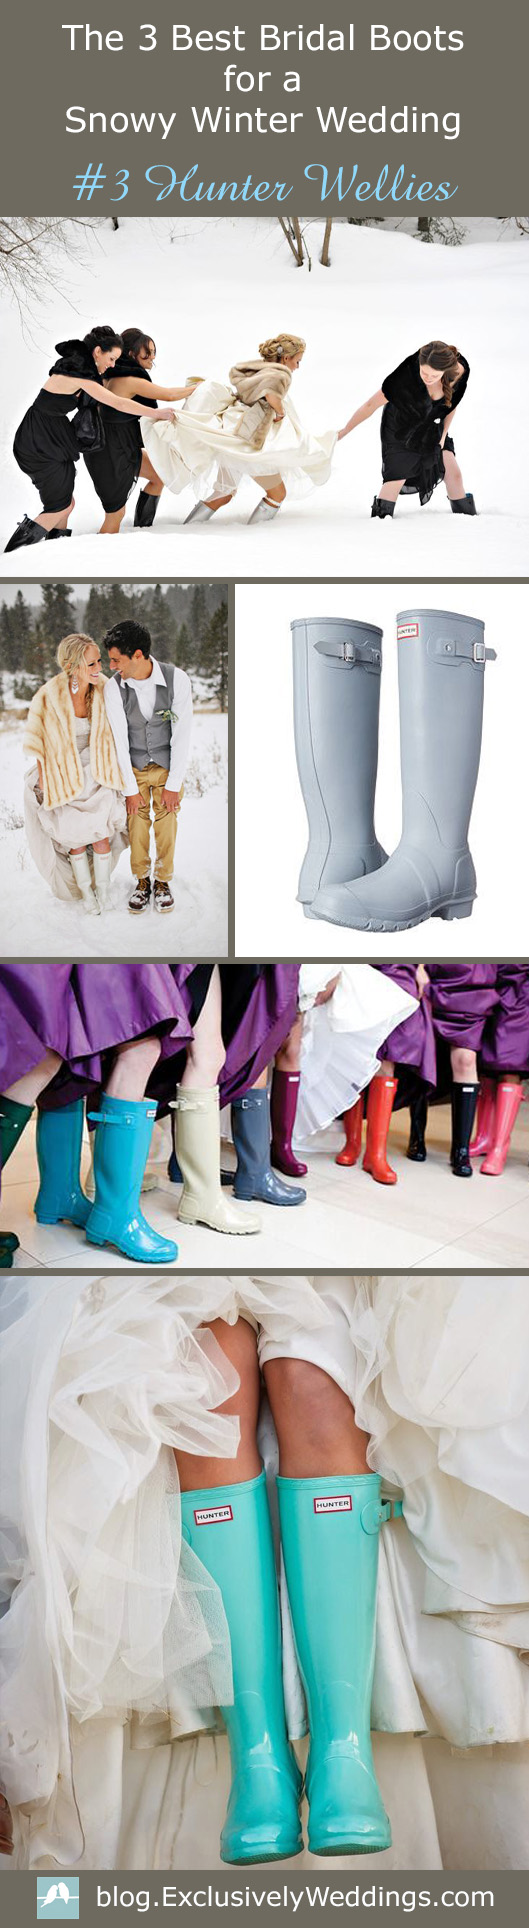 The_3_Best_Bridal_Boots_for_a_Snowy_Winter_Wedding_-Hunter Wellies